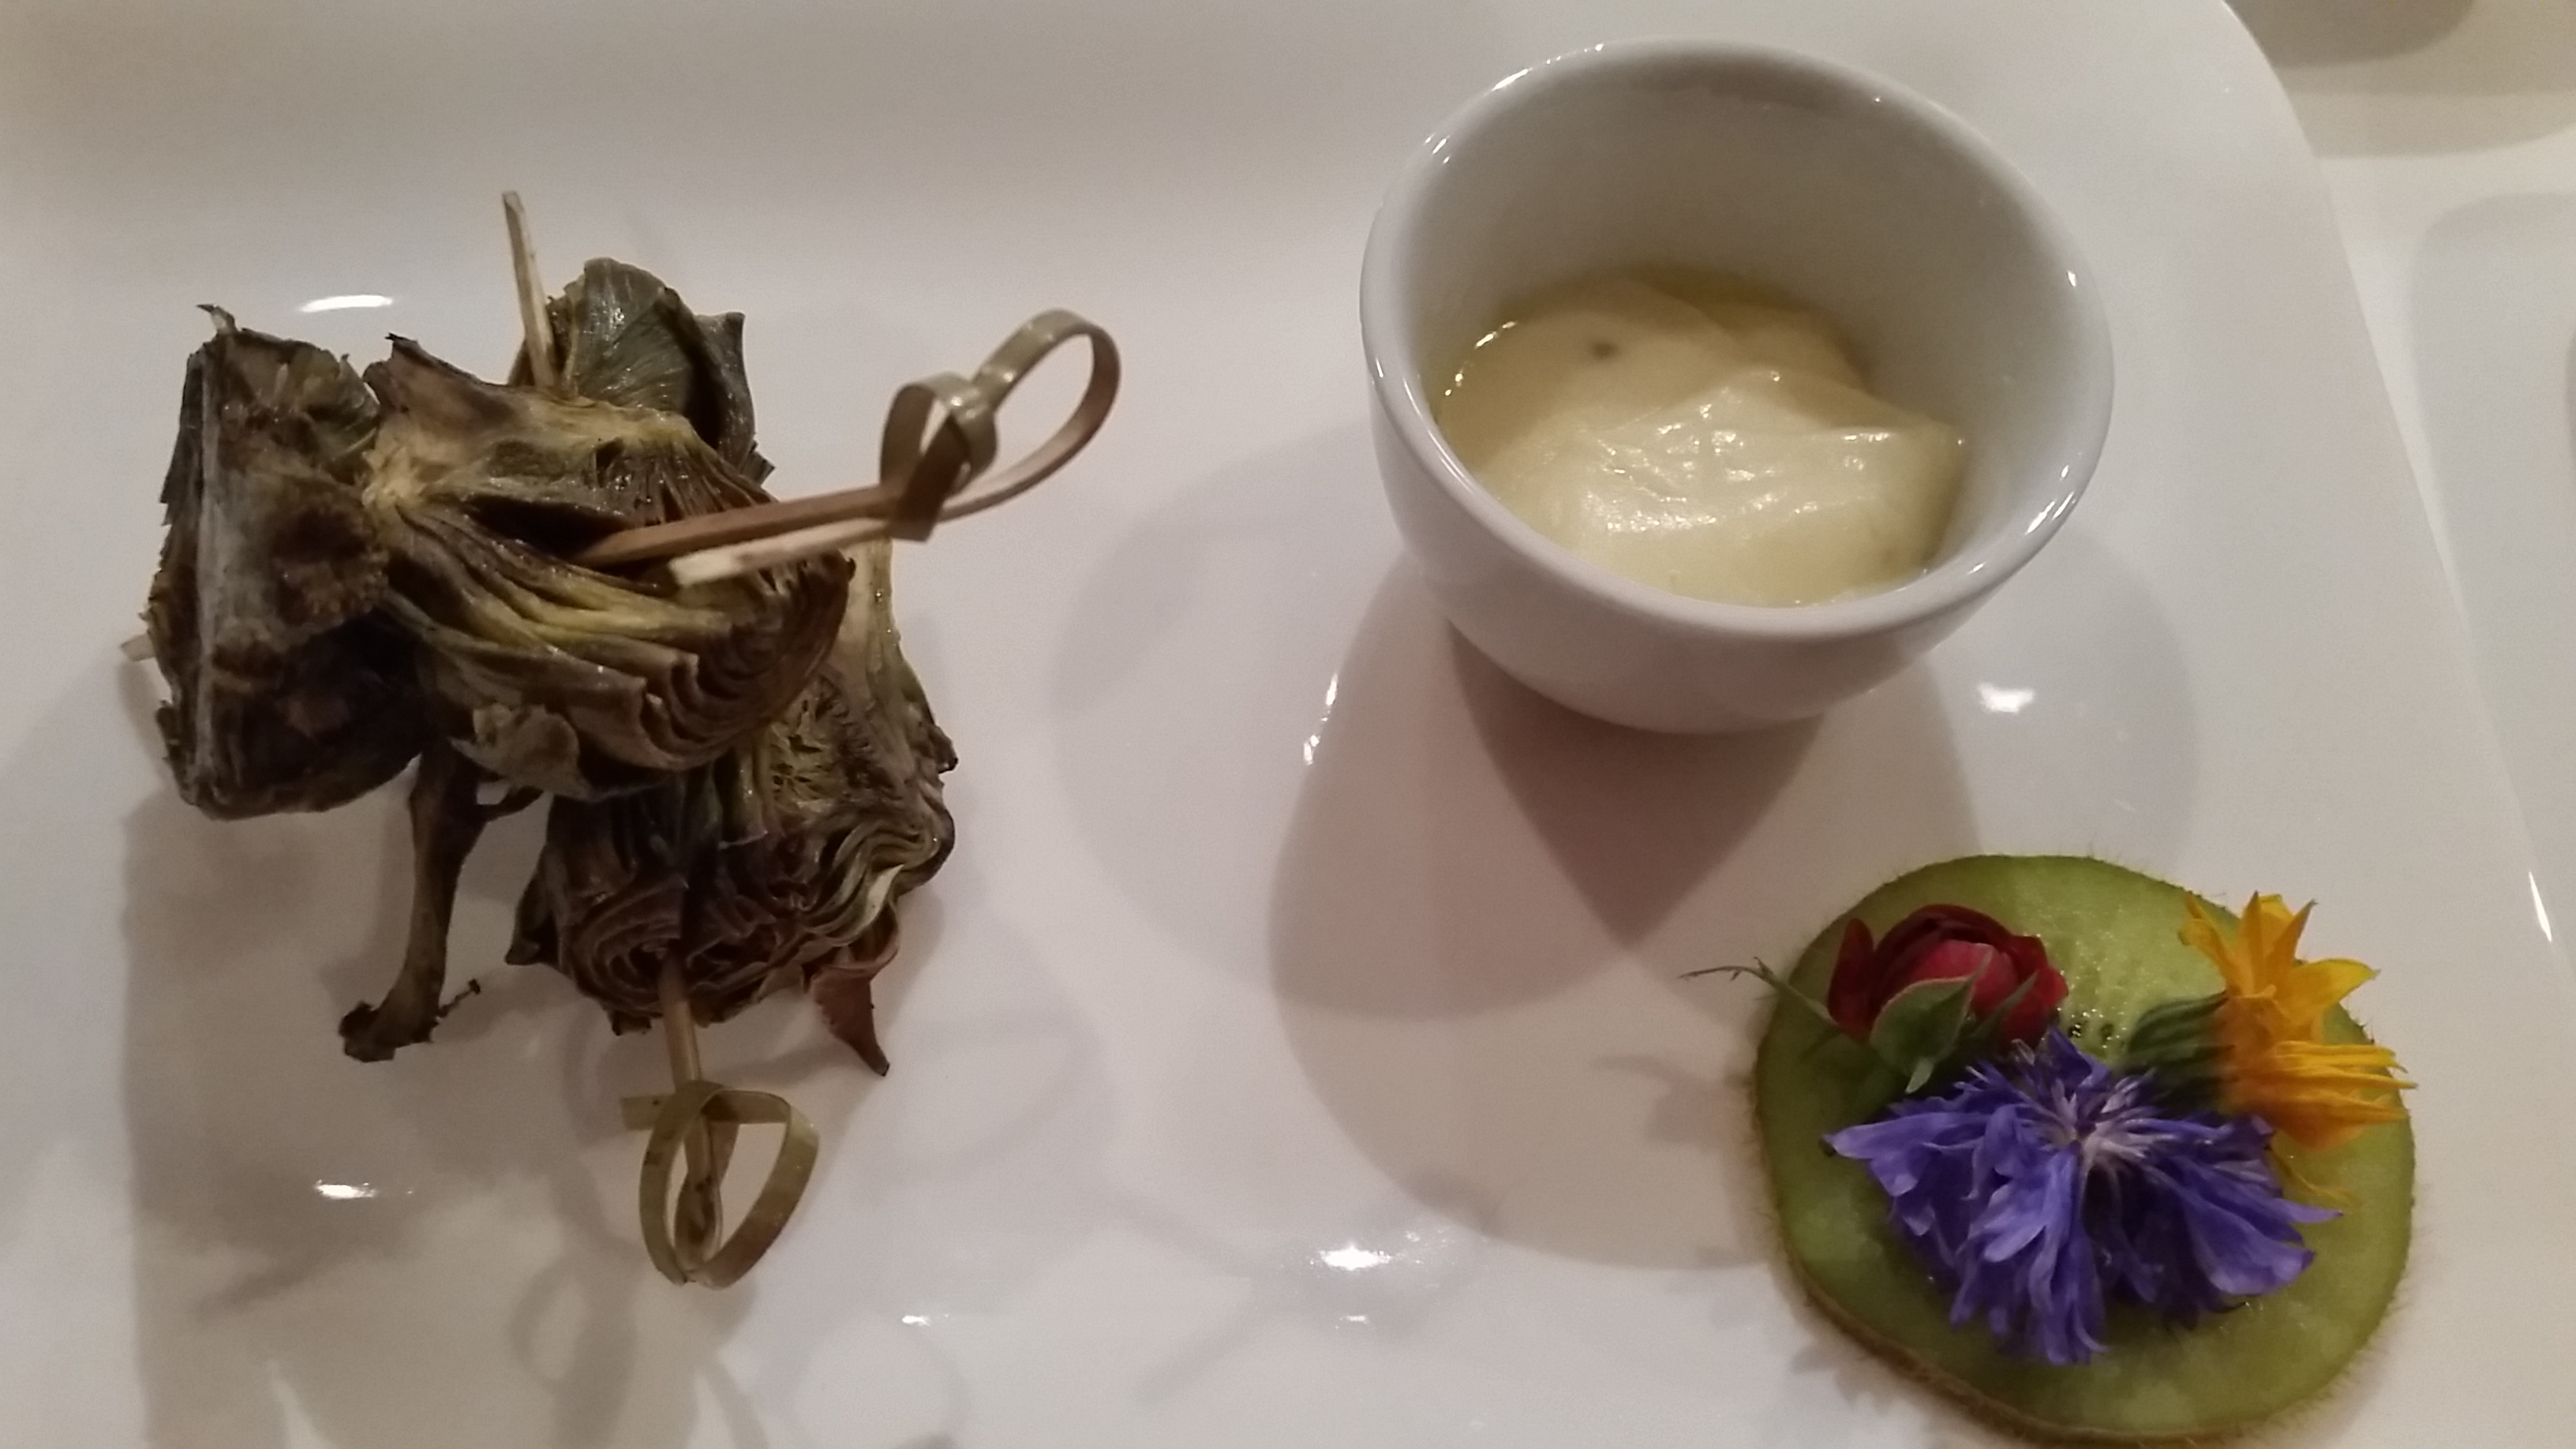 Grilled artichoke and aioli